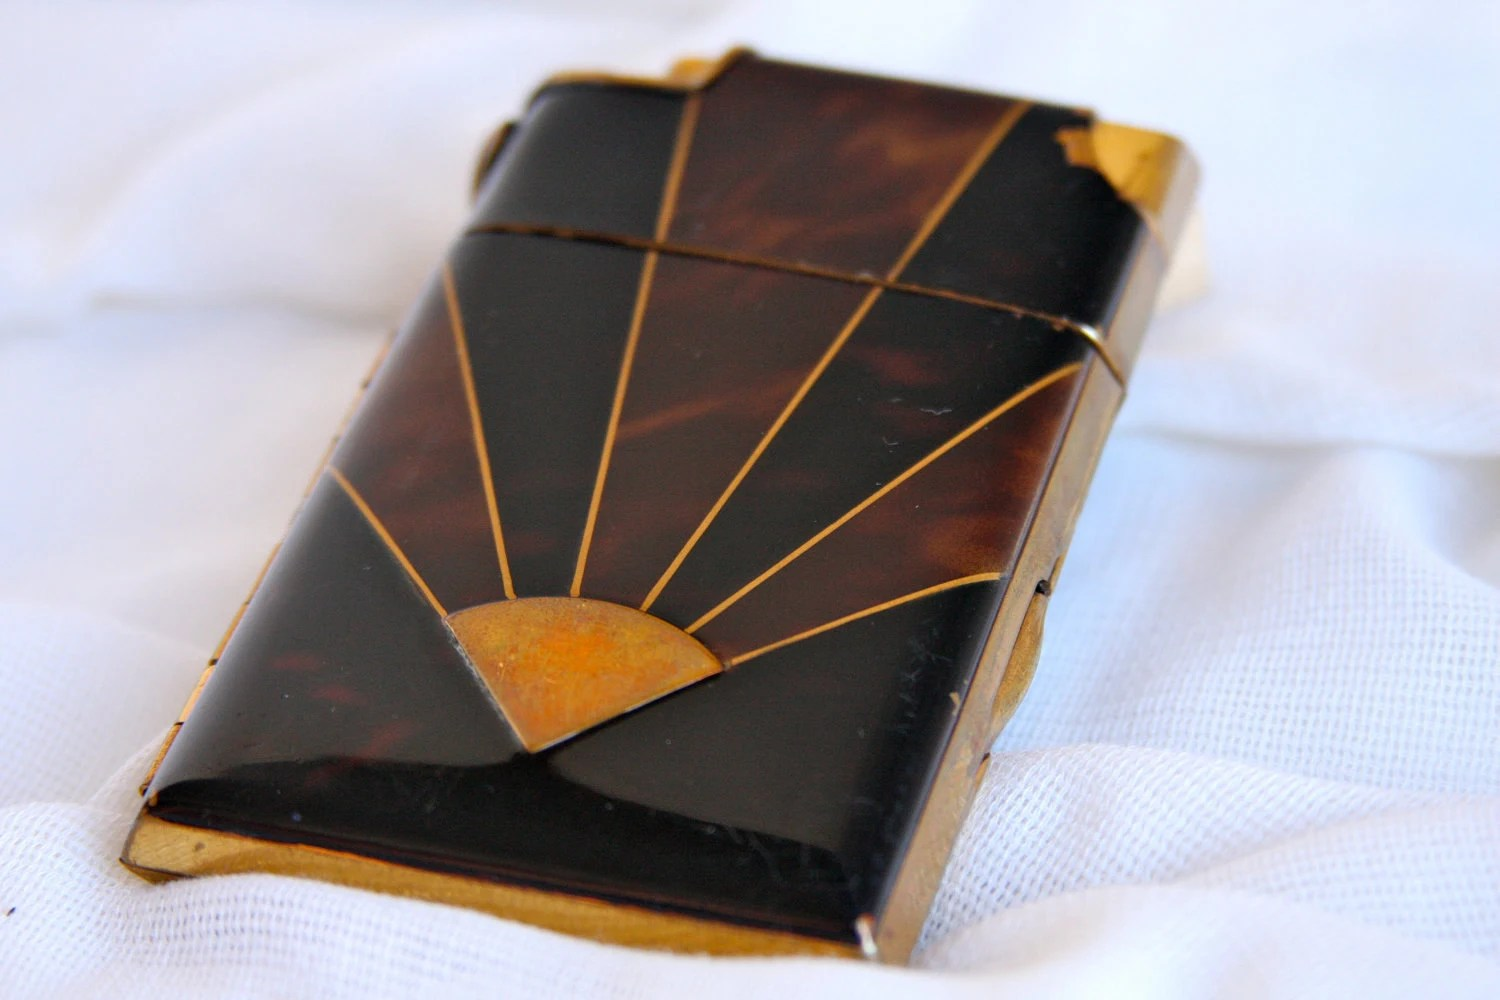 Vintage Art Deco Marathon Cigarette Case with Built-in Lighter - Fan Nameplate